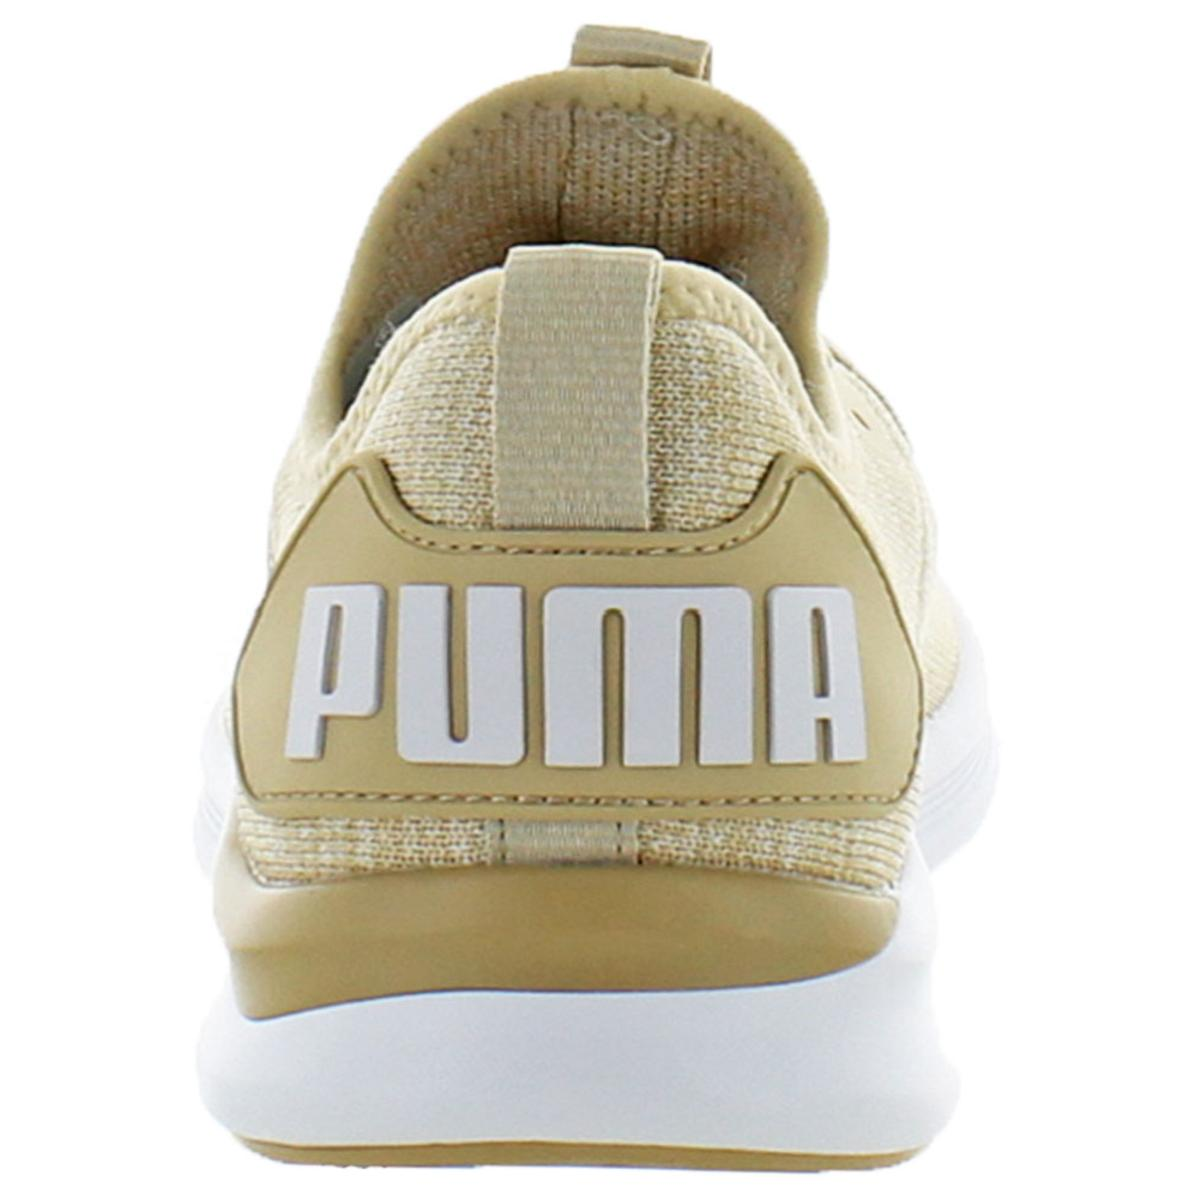 Puma-IGNITE-Flash-evoKNIT-Men-039-s-Knit-Mid-Top-Athleisure-Trainer-Sneaker-Shoes thumbnail 5